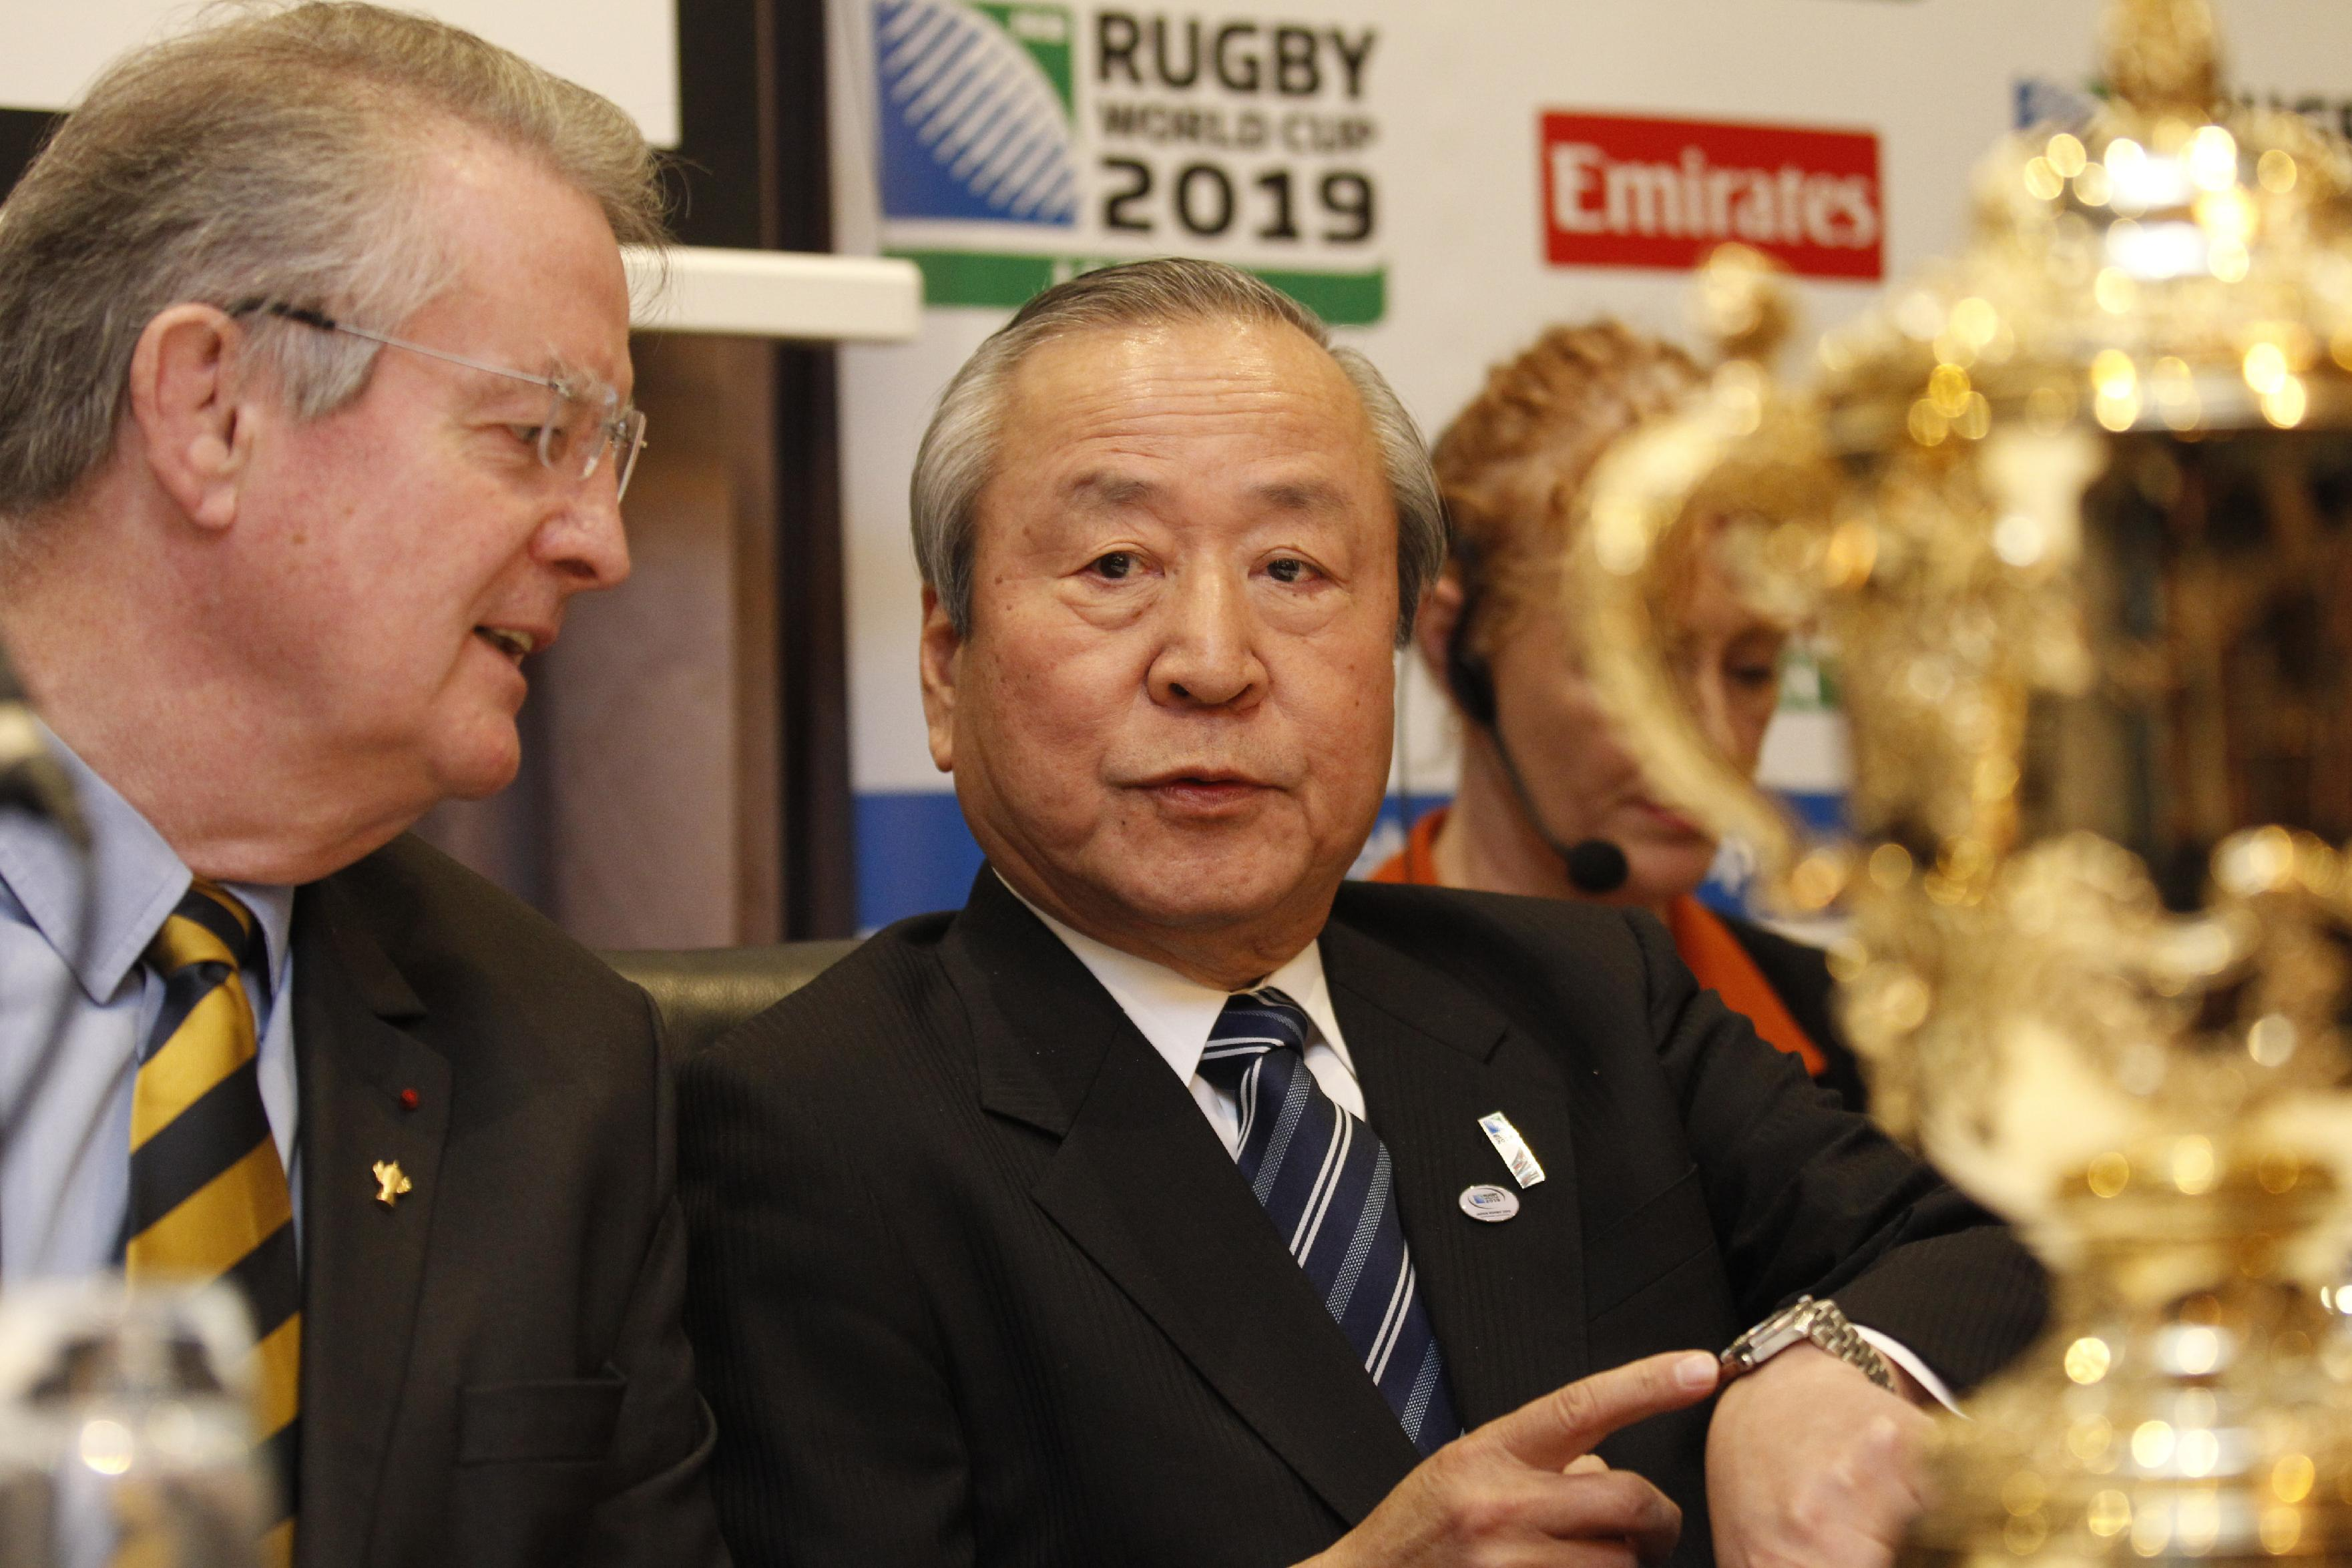 Tsunami-hit city among venues for 2019 Rugby World Cup